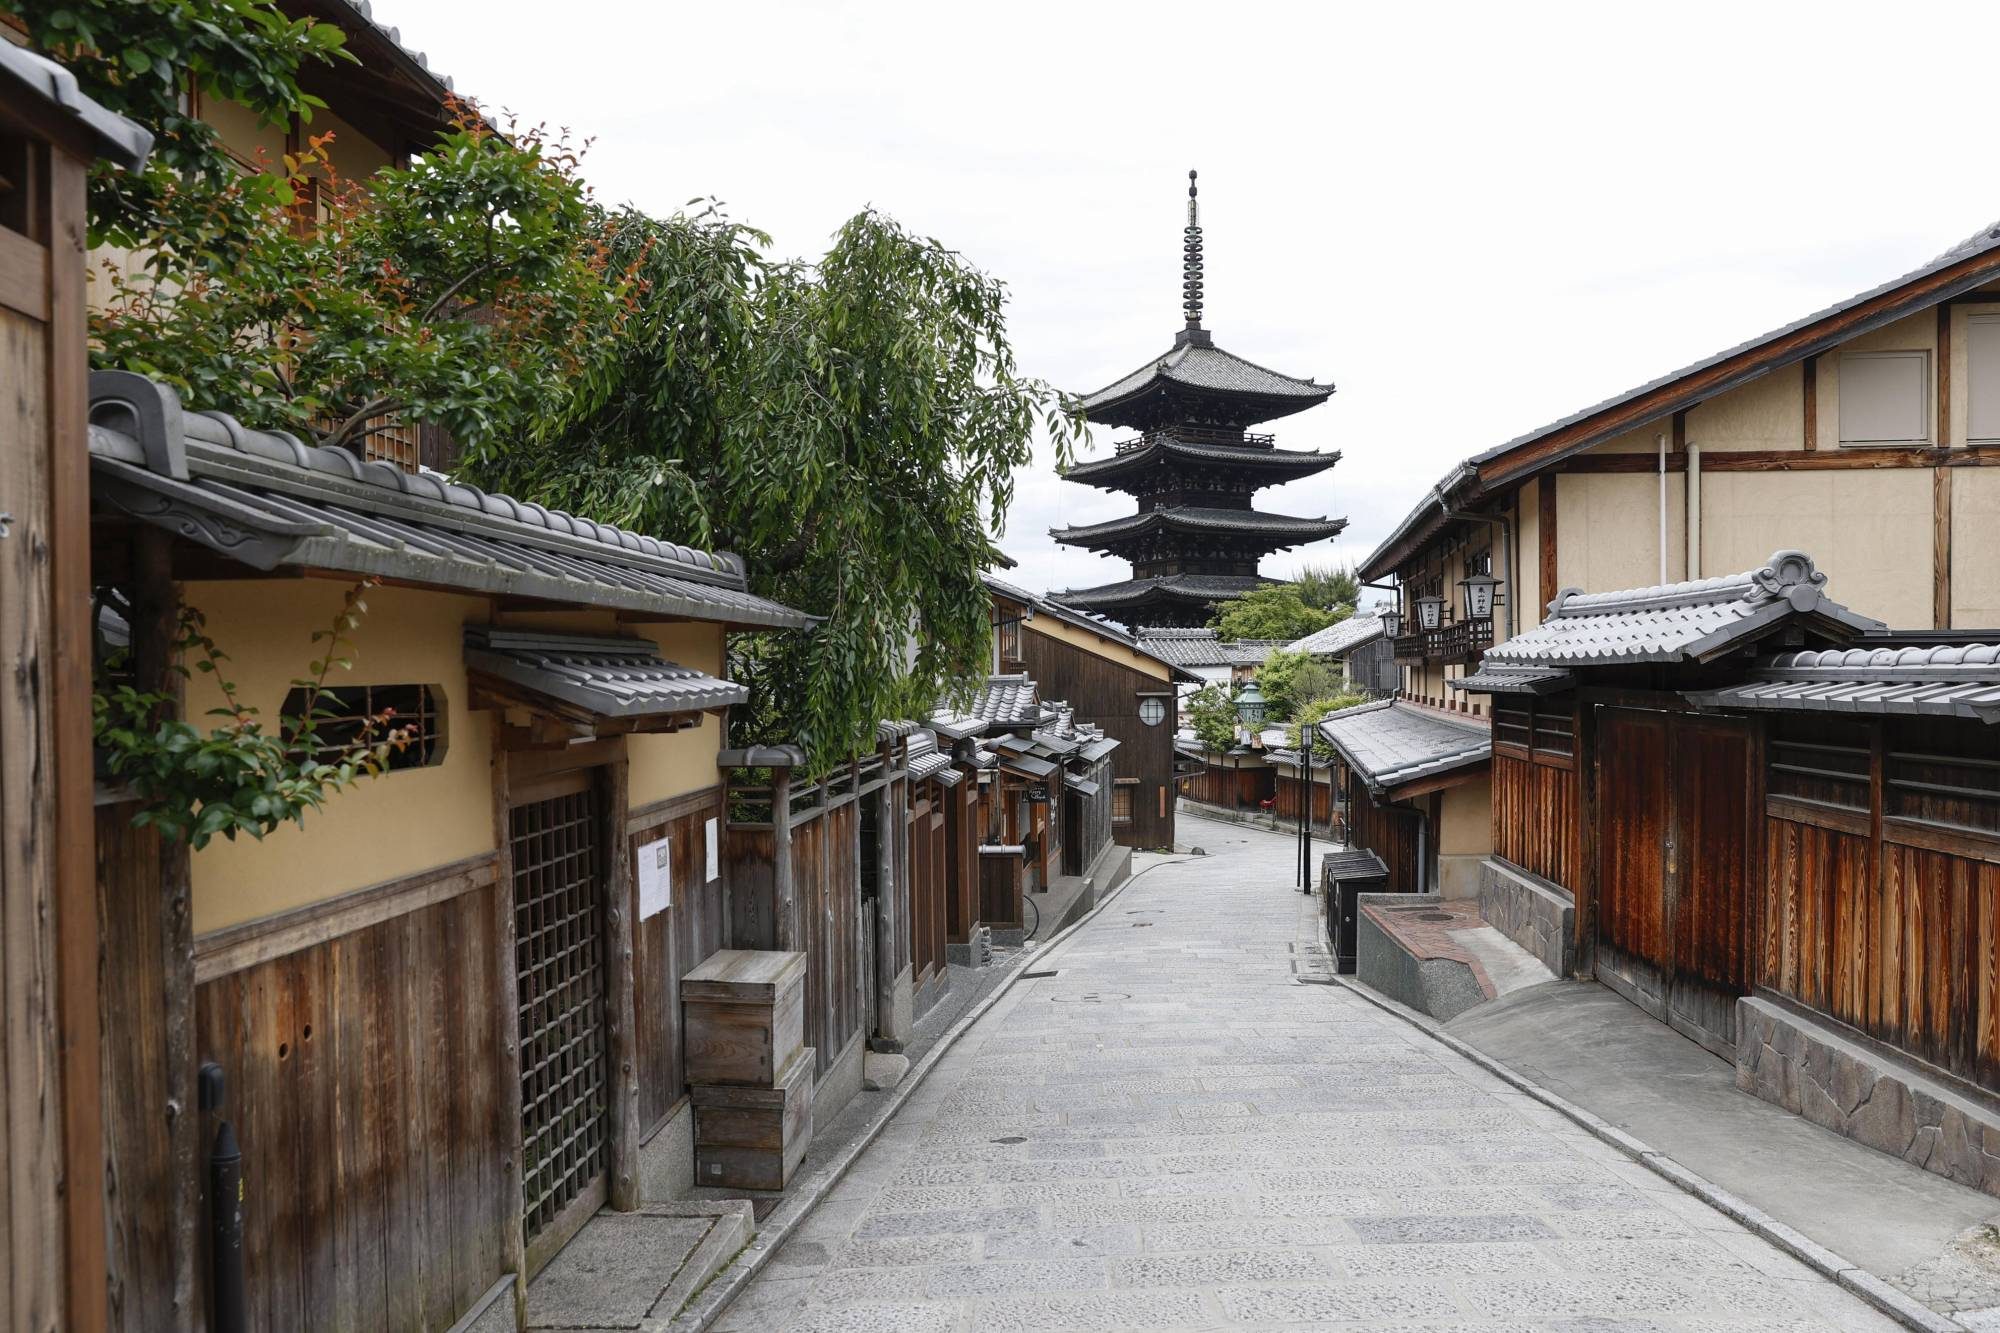 The Kyoto municipal tourism office announced in June that as few as 450,000 foreign tourists visited the city in 2020 — an  88% drop compared to the 3.8 million visitors who came in 2019. | KYODO